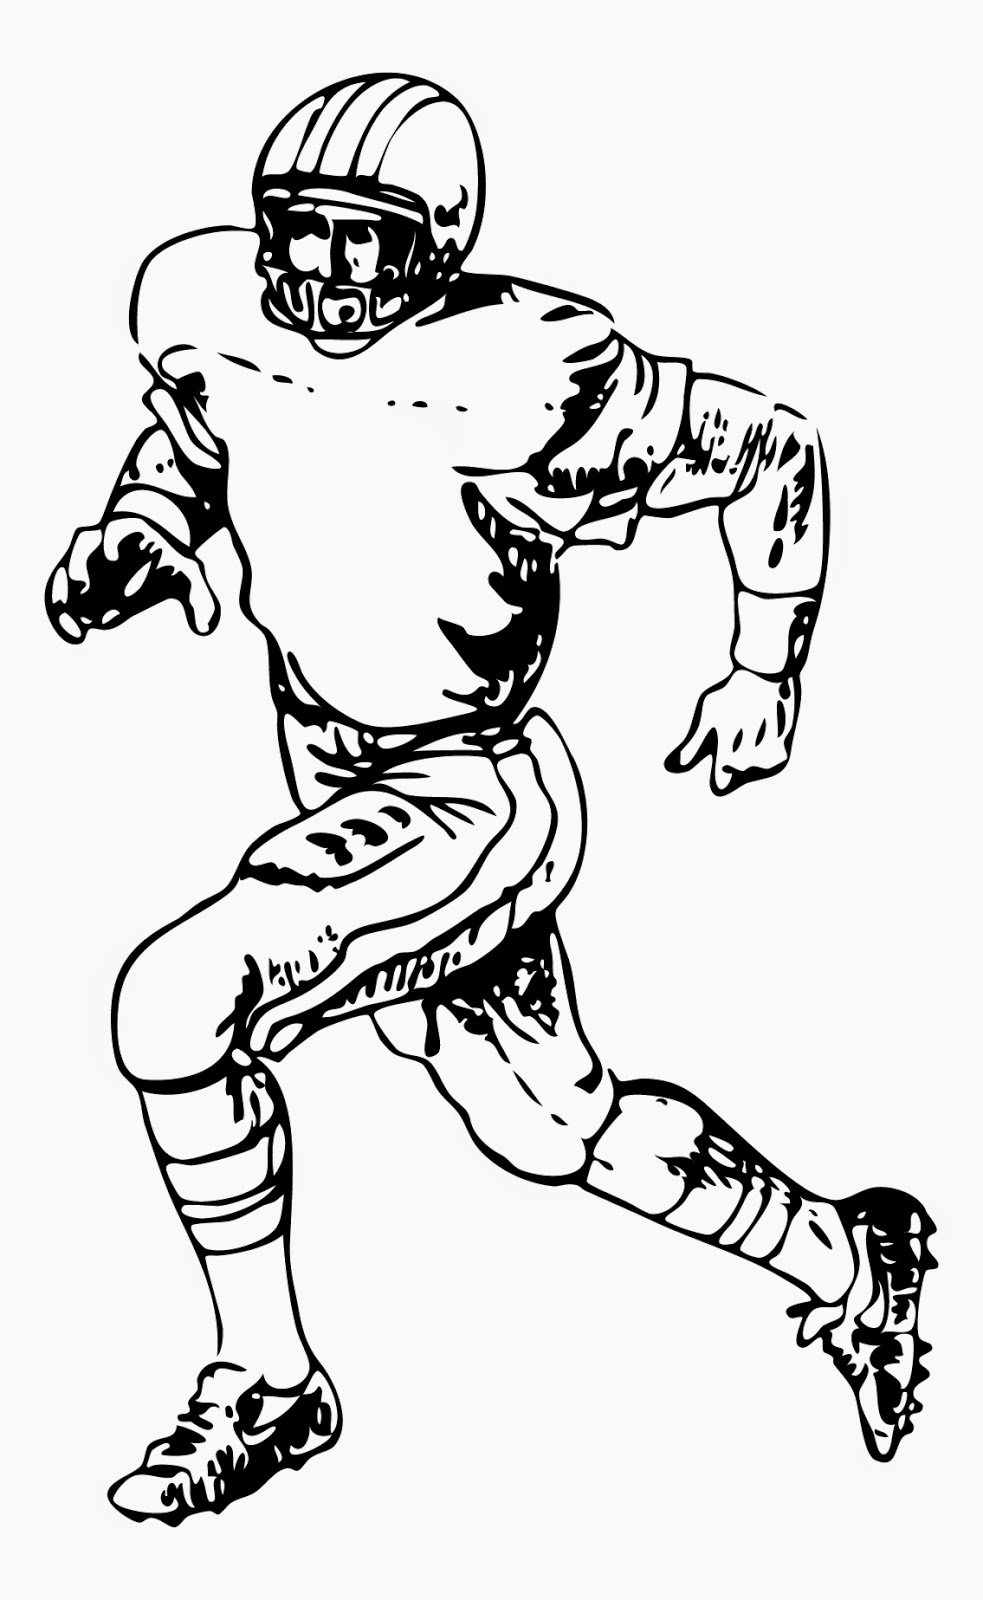 nfl football player coloring pages - coloring pages football players